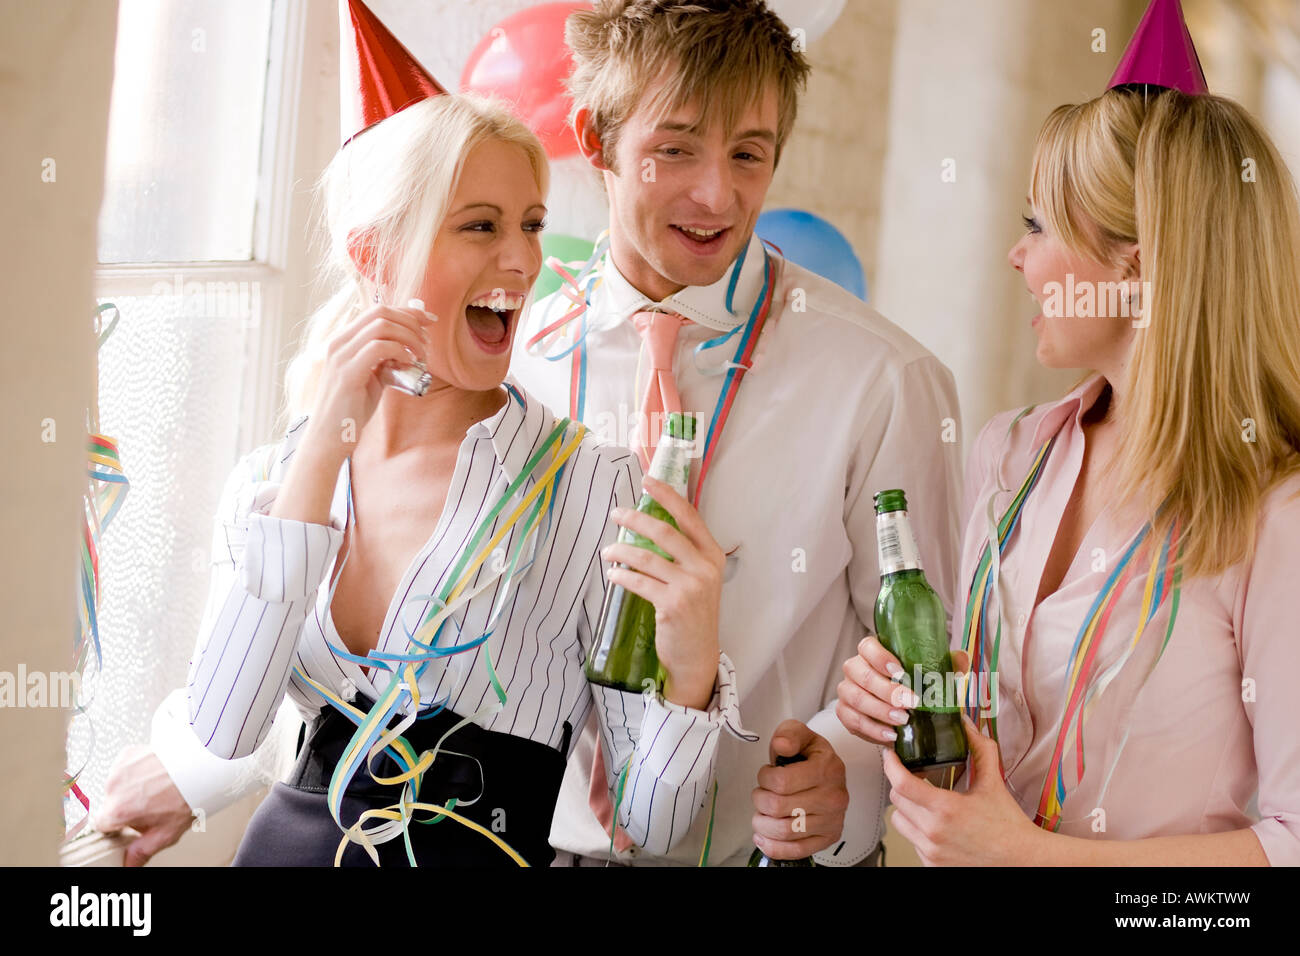 group of people drinking at an office party - Stock Image